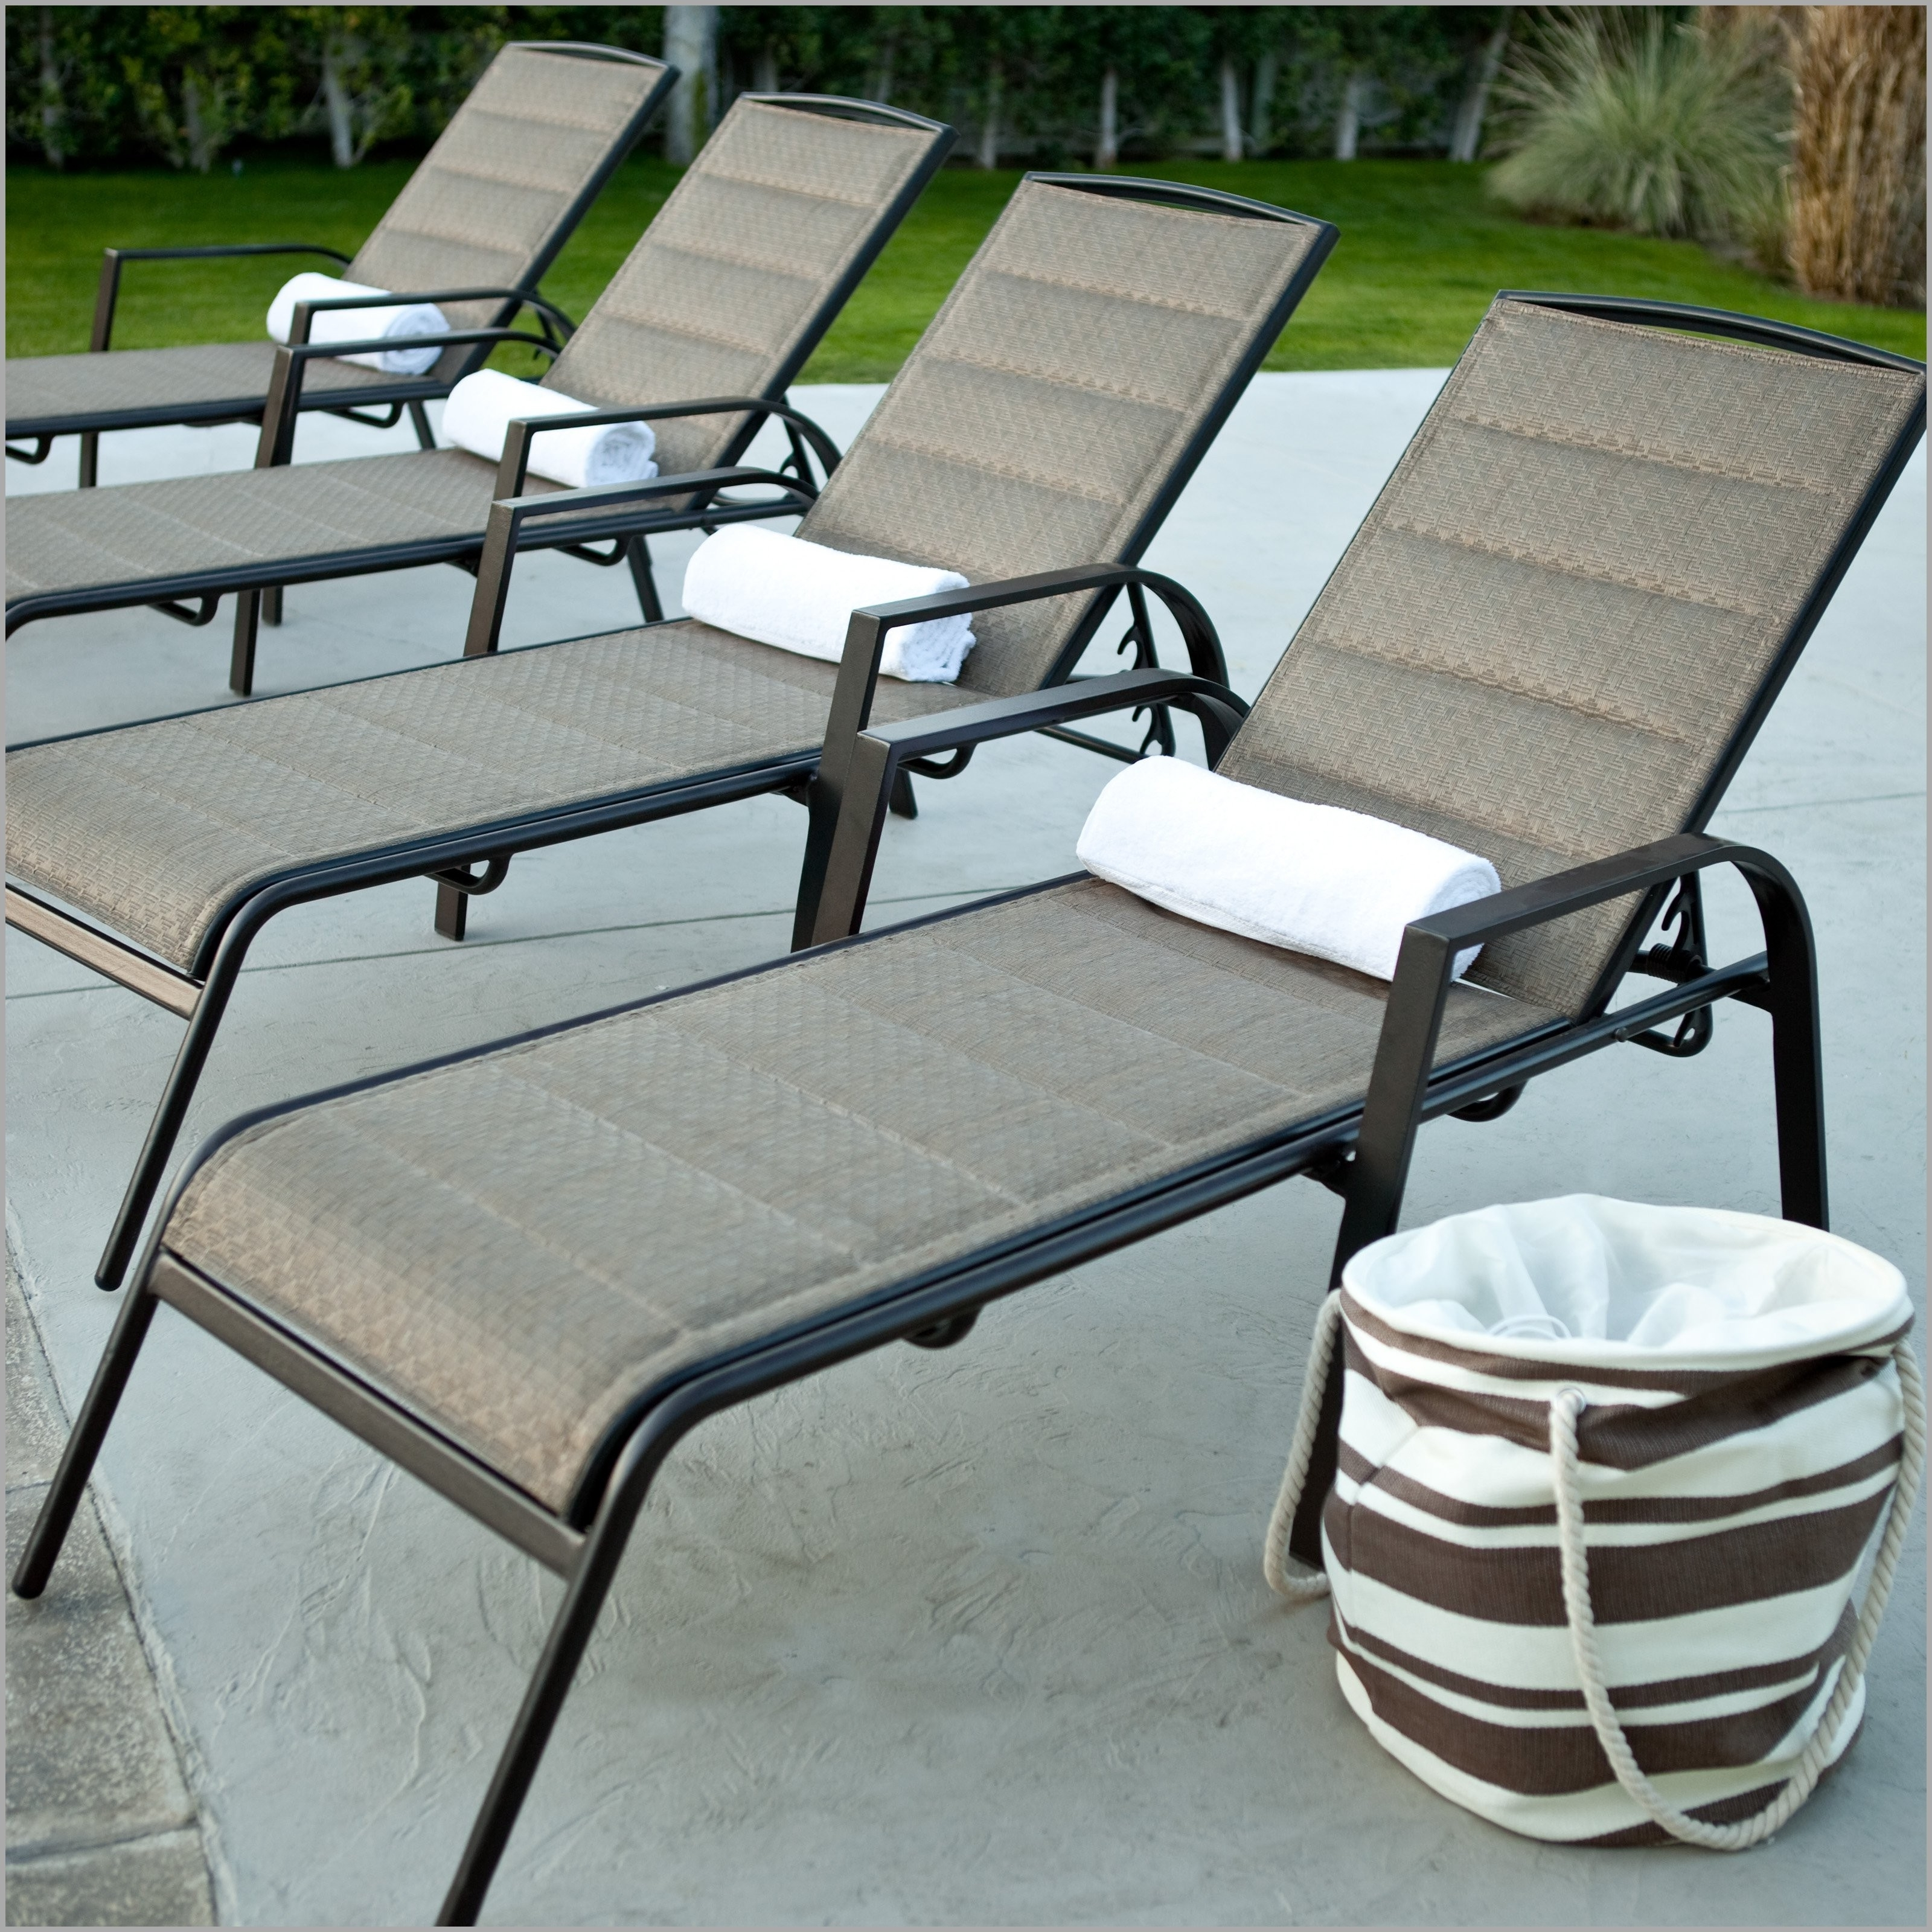 Extraordinary Pool Chaise Lounge Chairs Decorative 600357 – Chair For 2018 Outdoor Pool Chaise Lounge Chairs (View 14 of 15)